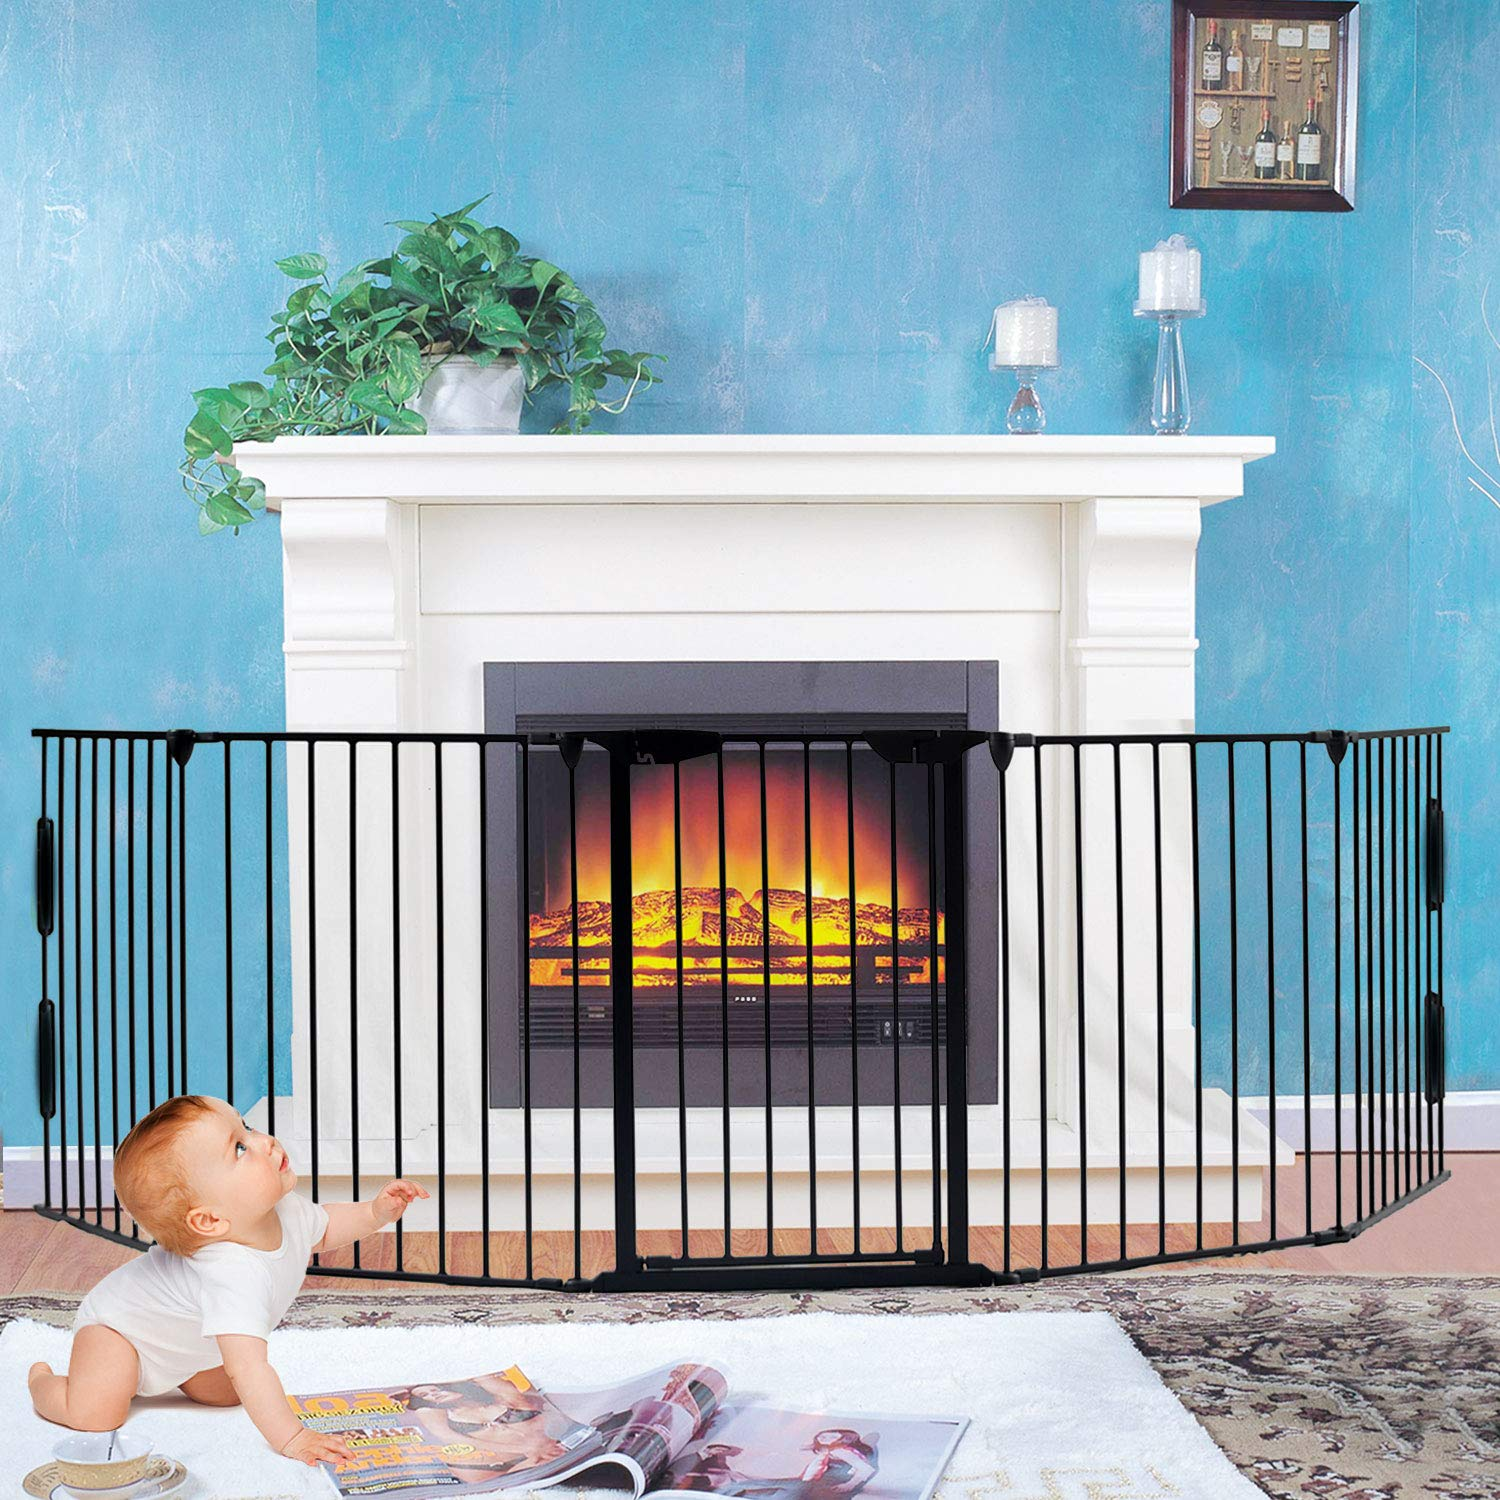 Fireplace Fence,Baby Safety Gate Fireplace Freestanding 3-in-1 Wide Adjustable 5-Panel Folding Metal Barrier- 125 Long Play Yard with Door for Indoor Pet Dog Christmas Tree Enclosure,30 Tall Black